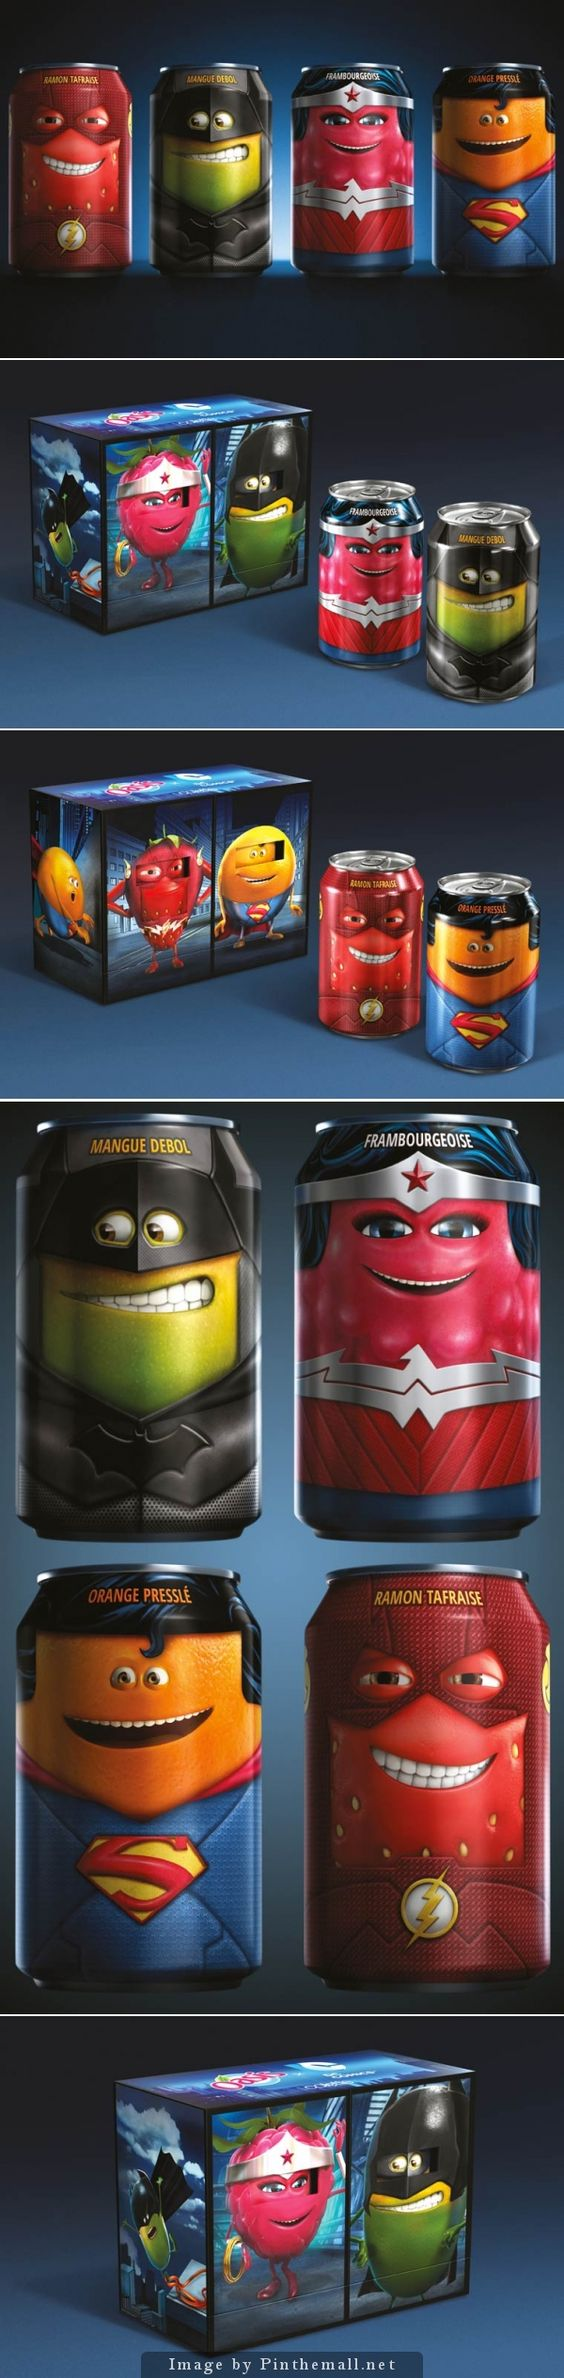 DC Comics x Oasis – Quand les super-héros rencontrent les personnages Oasis. Comic inspired packaging curated by Packaging Diva PD : ) created via http://www.ufunk.net/food/dc-comics-x-oasis/